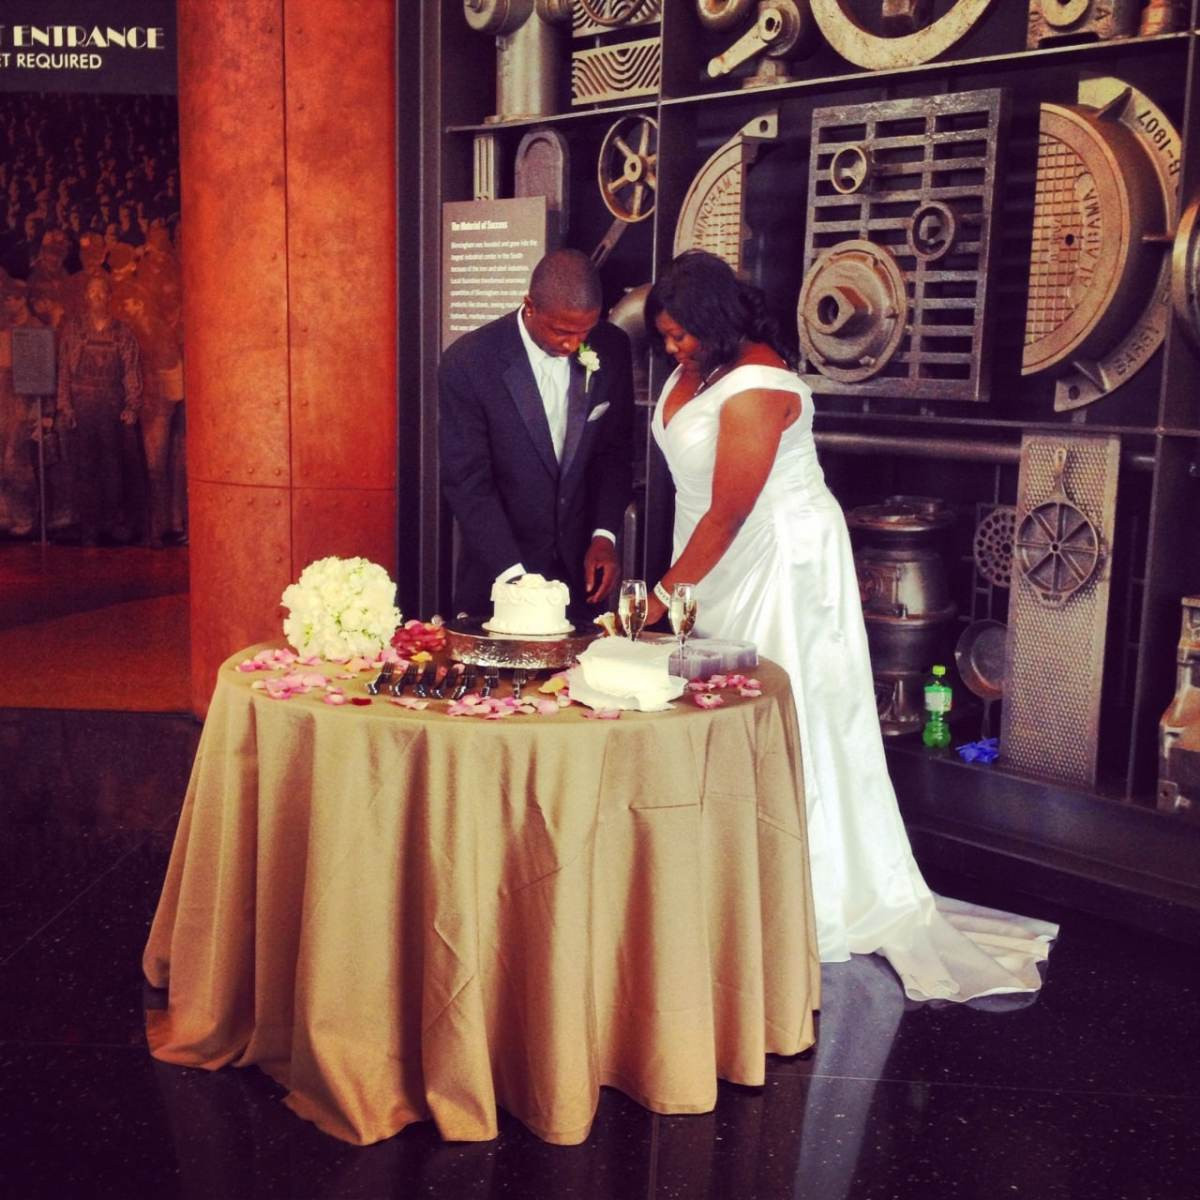 Say 'I do' with a view on Valentine's Day at Vulcan Park and Museum in Birmingham